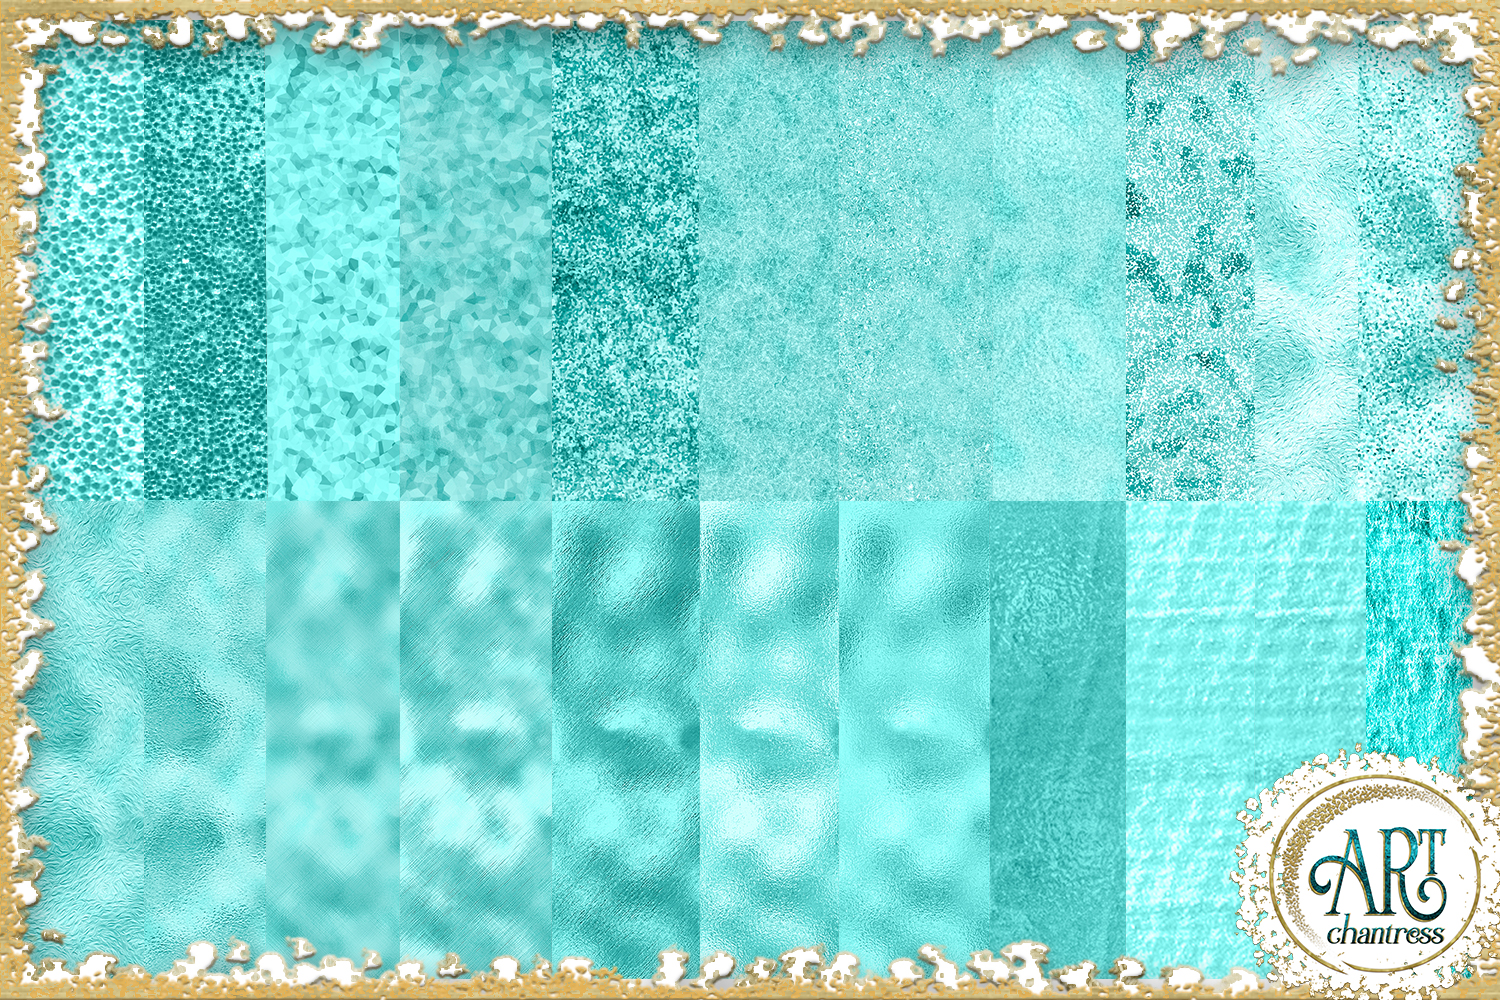 Teal Aqua Foil Glitter Seamless Digital Papers,Borders Set example image 3